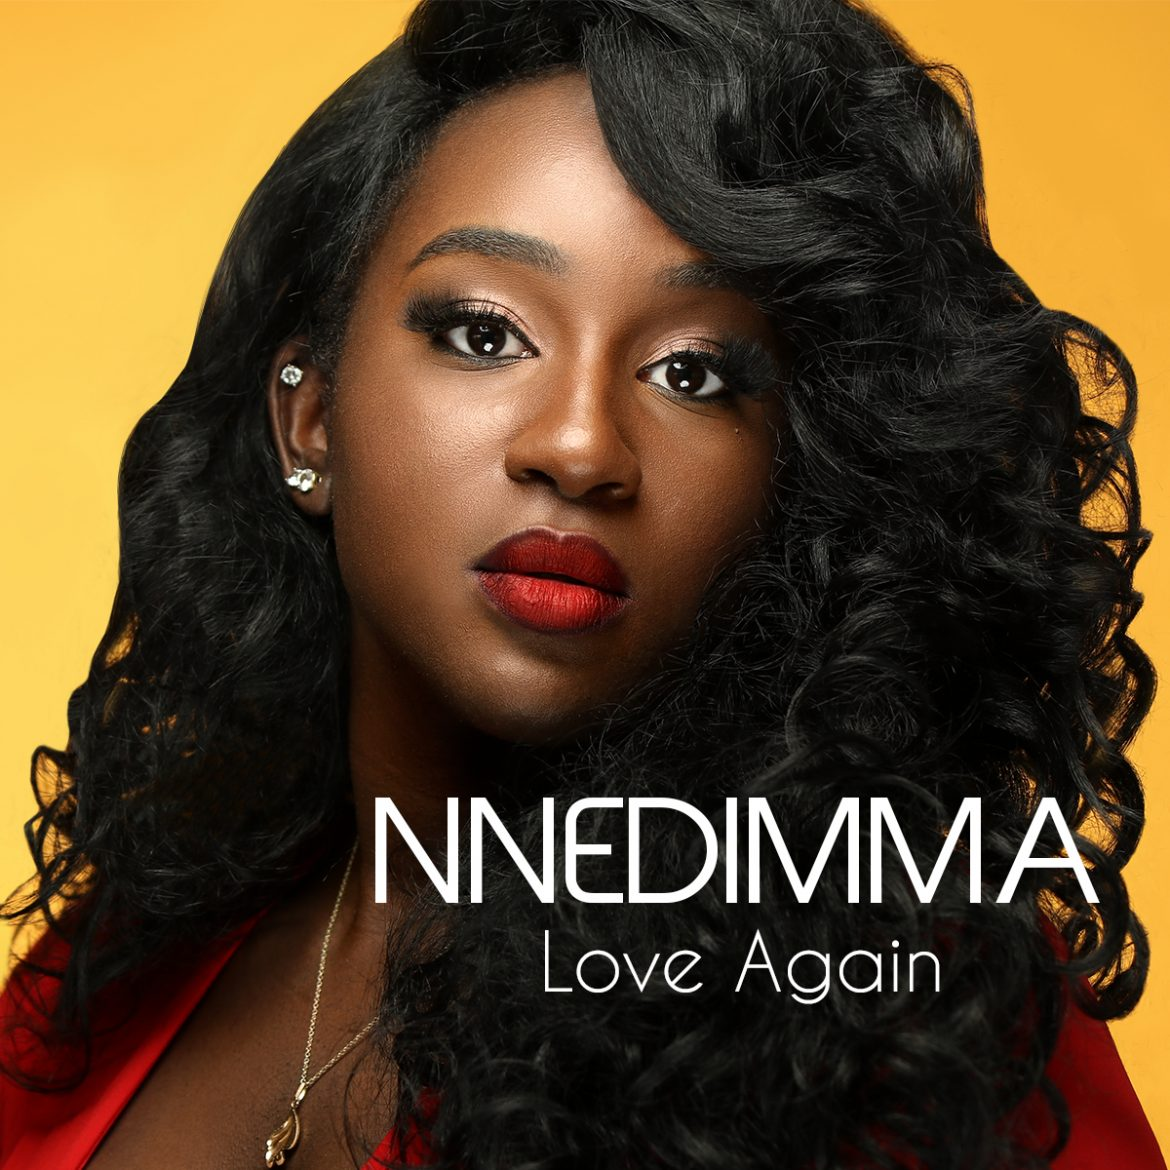 Nnedimma - Love Again